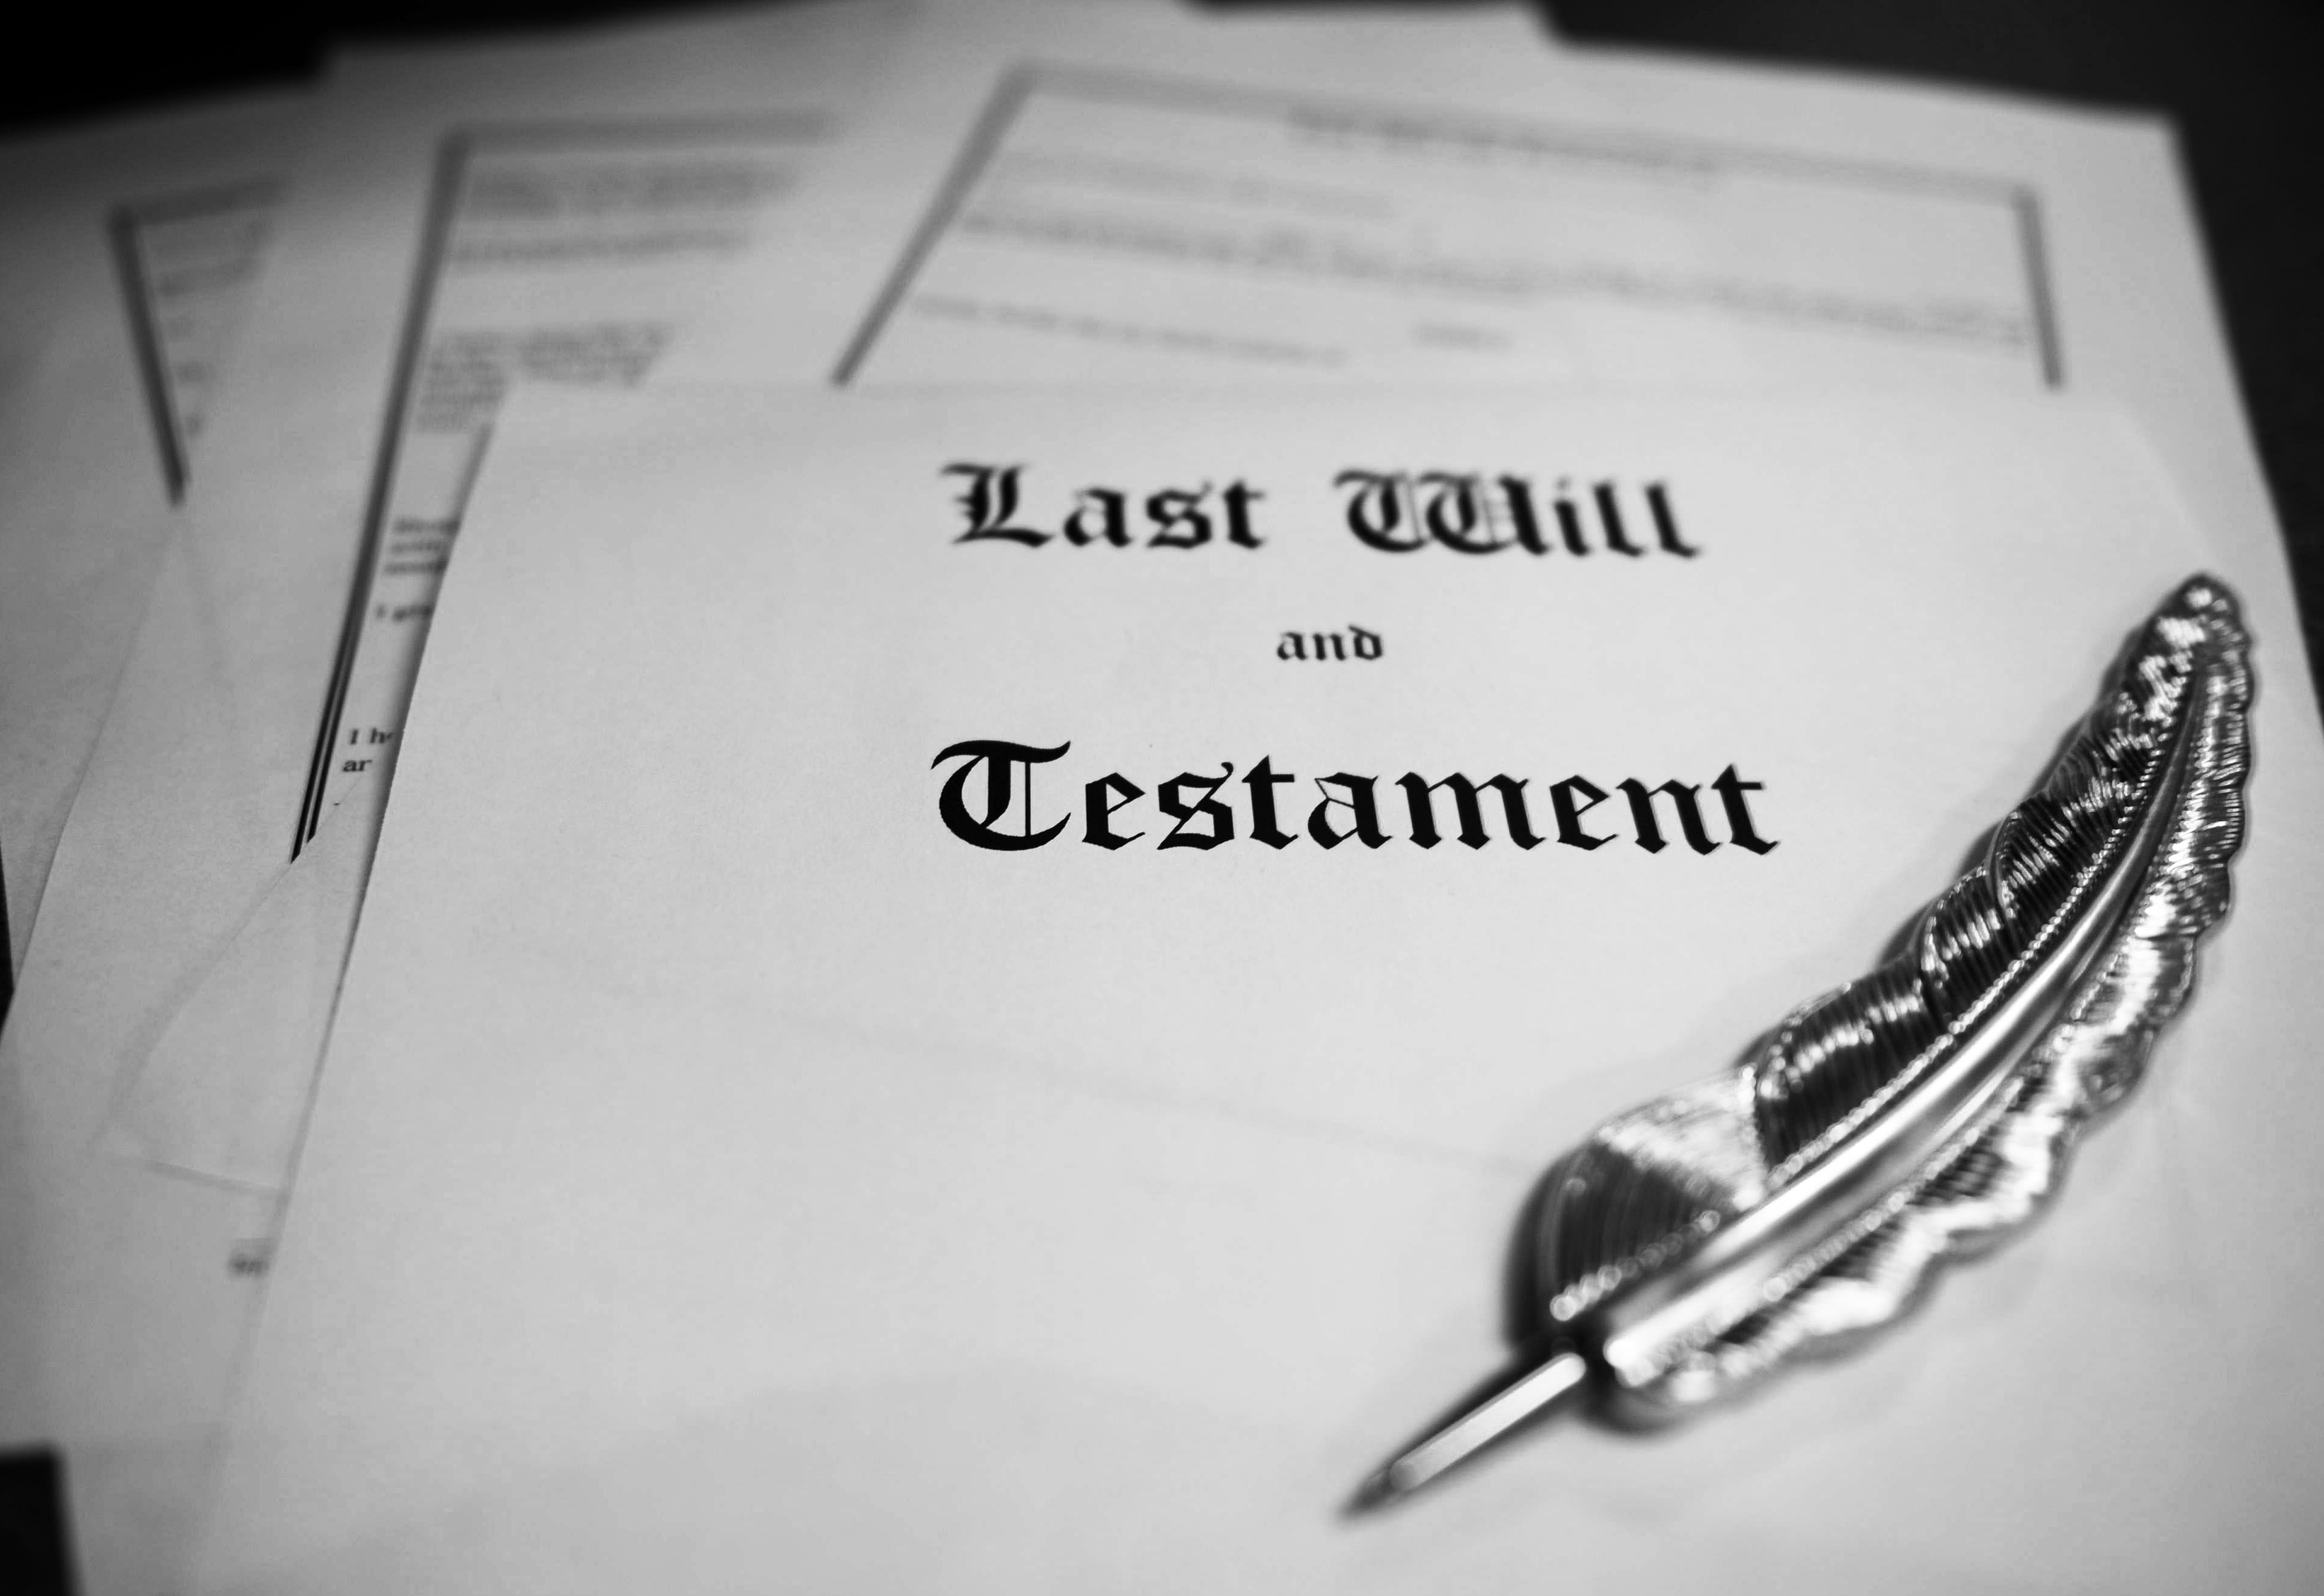 For mistakes, are executors liable during the probate legal process?